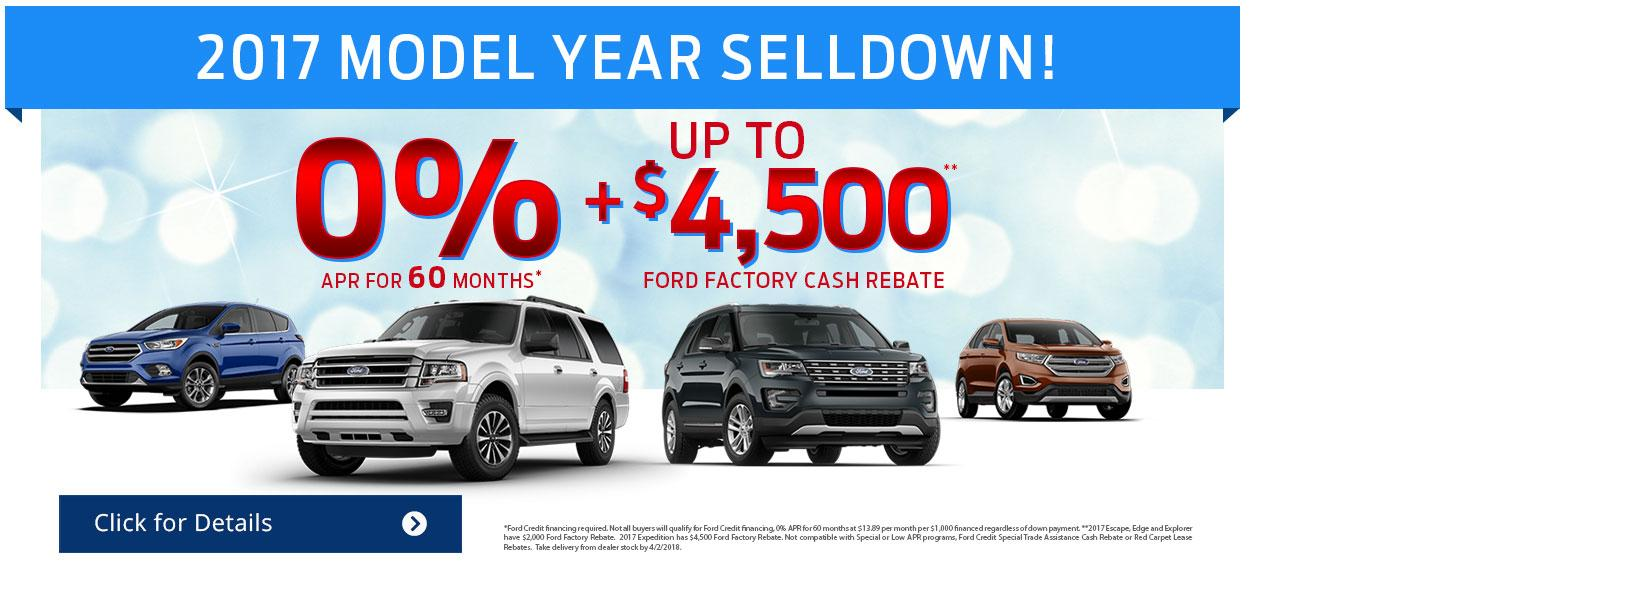 2017 Model Year Selldown